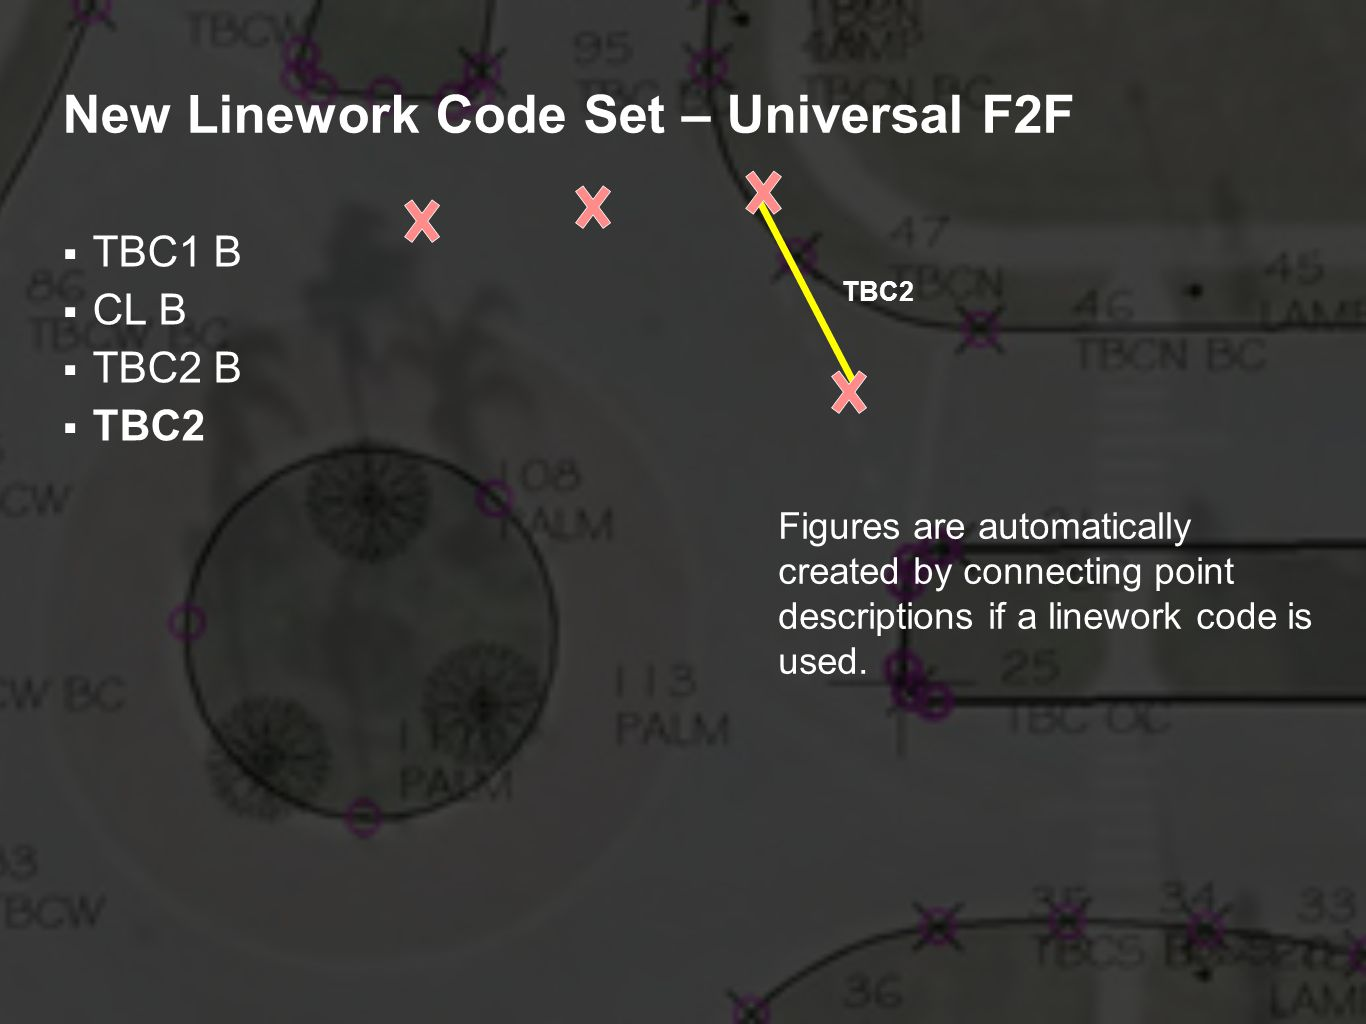 New Linework Code Set – Universal F2F TBC1 B CL B TBC2 B TBC2 Figures are automatically created by connecting point descriptions if a linework code is used.